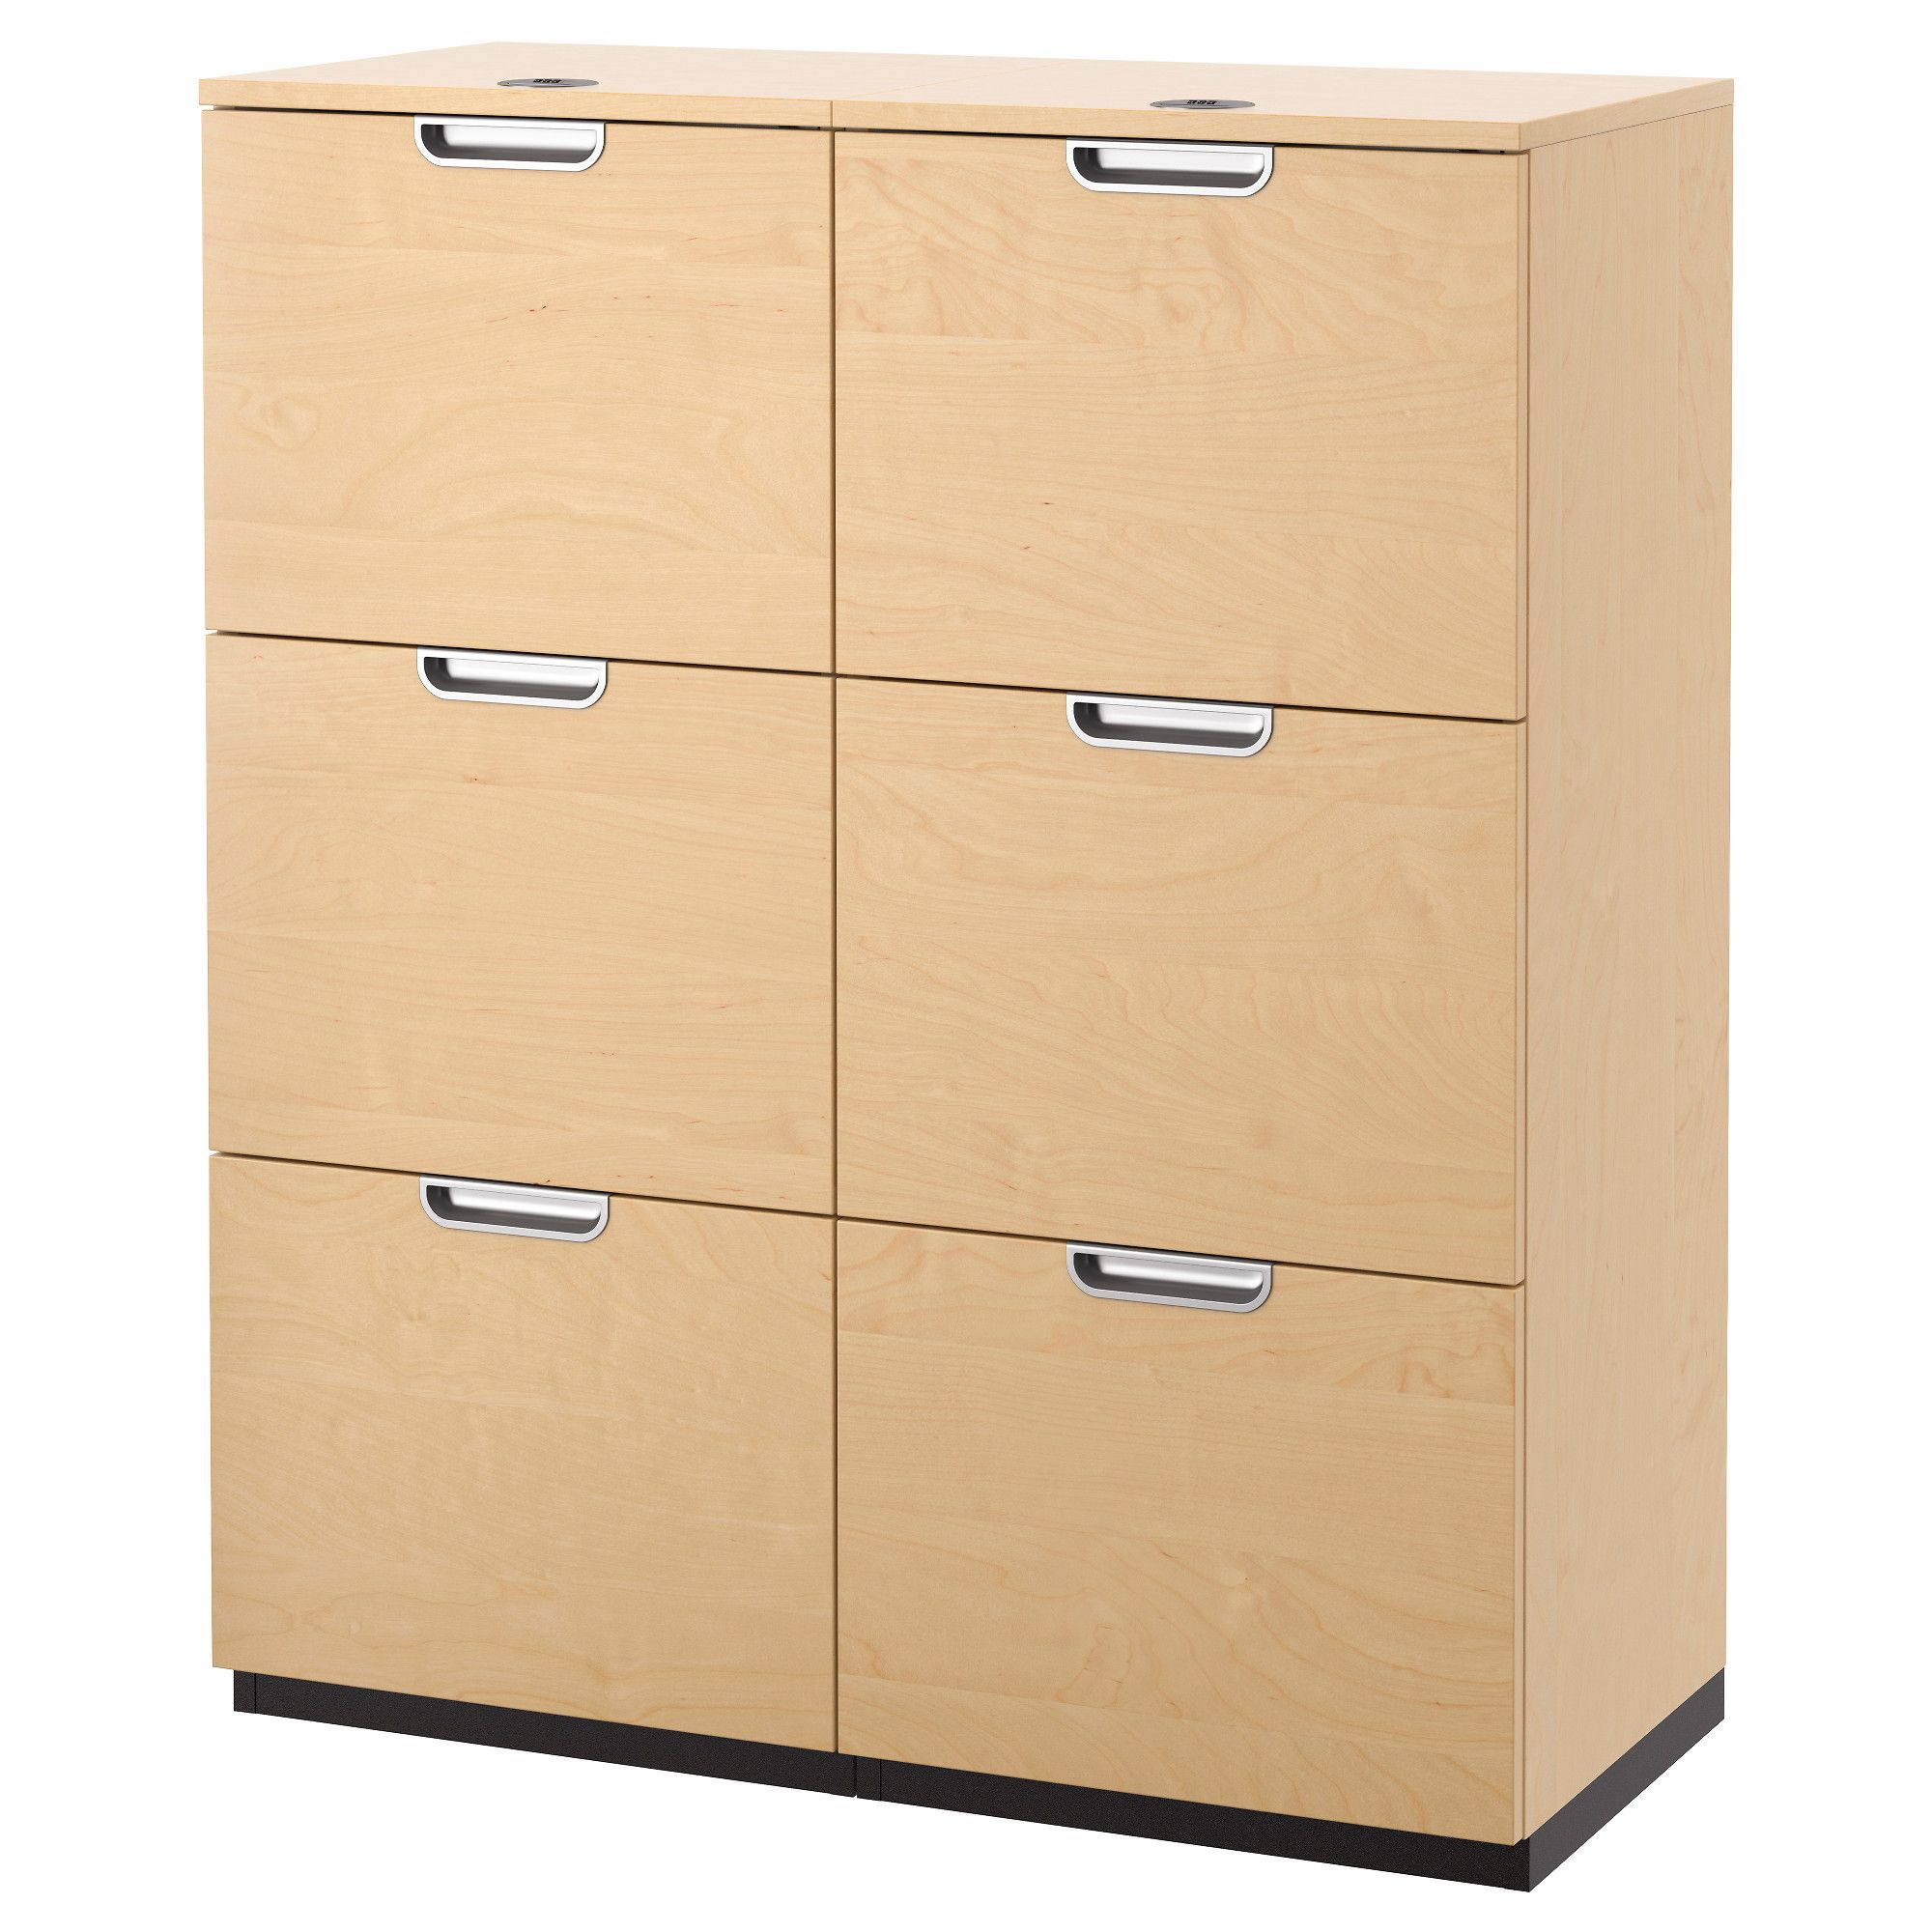 Australia Shallow Storage Cabinet Home Office Filing Cabinet